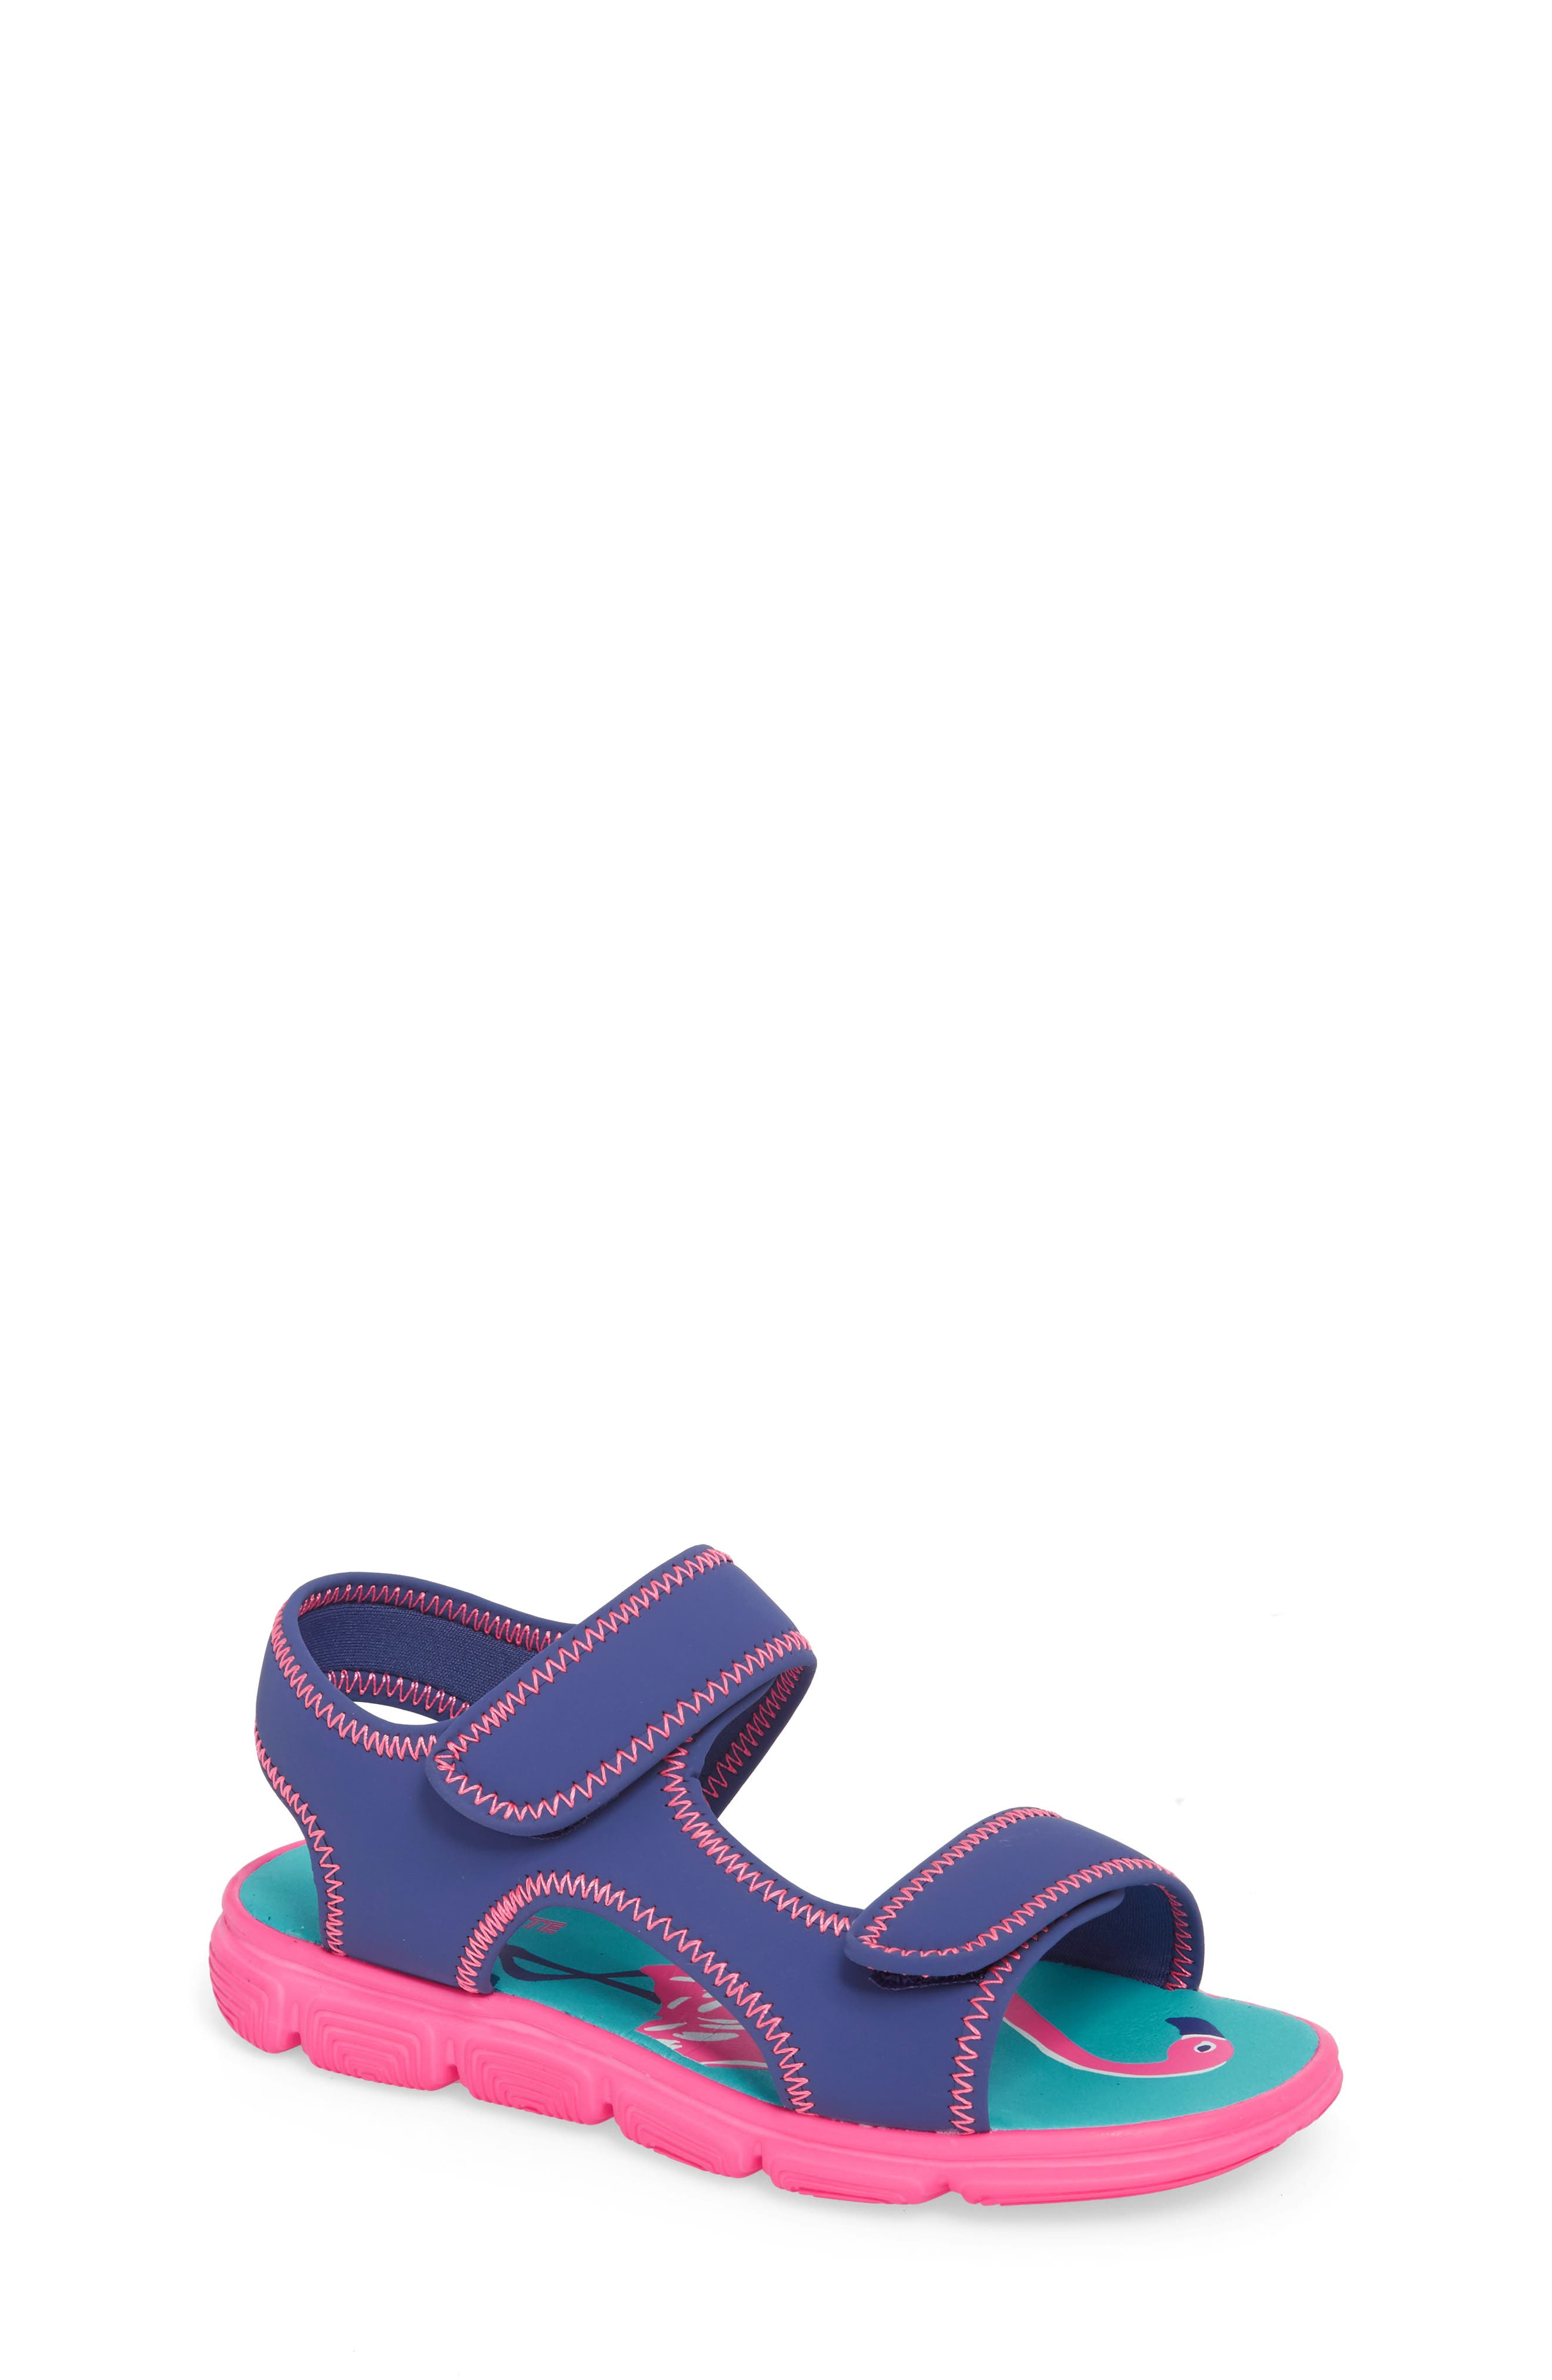 Everly Water Sandal,                         Main,                         color,